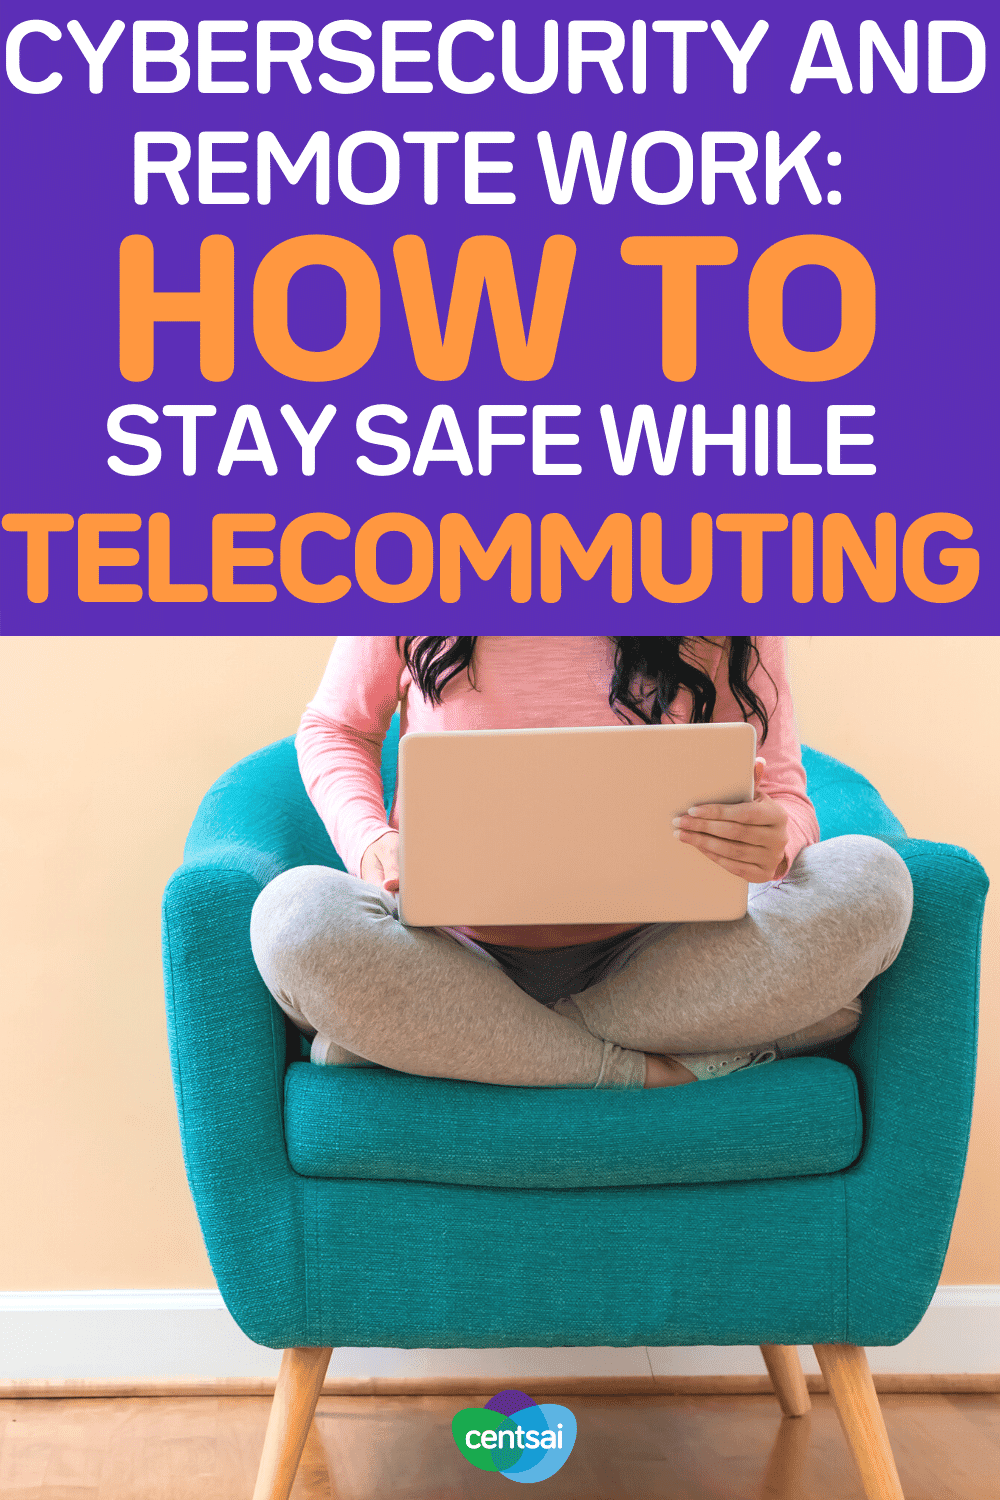 Cybersecurity and Remote Work How to Stay Safe While Telecommuting